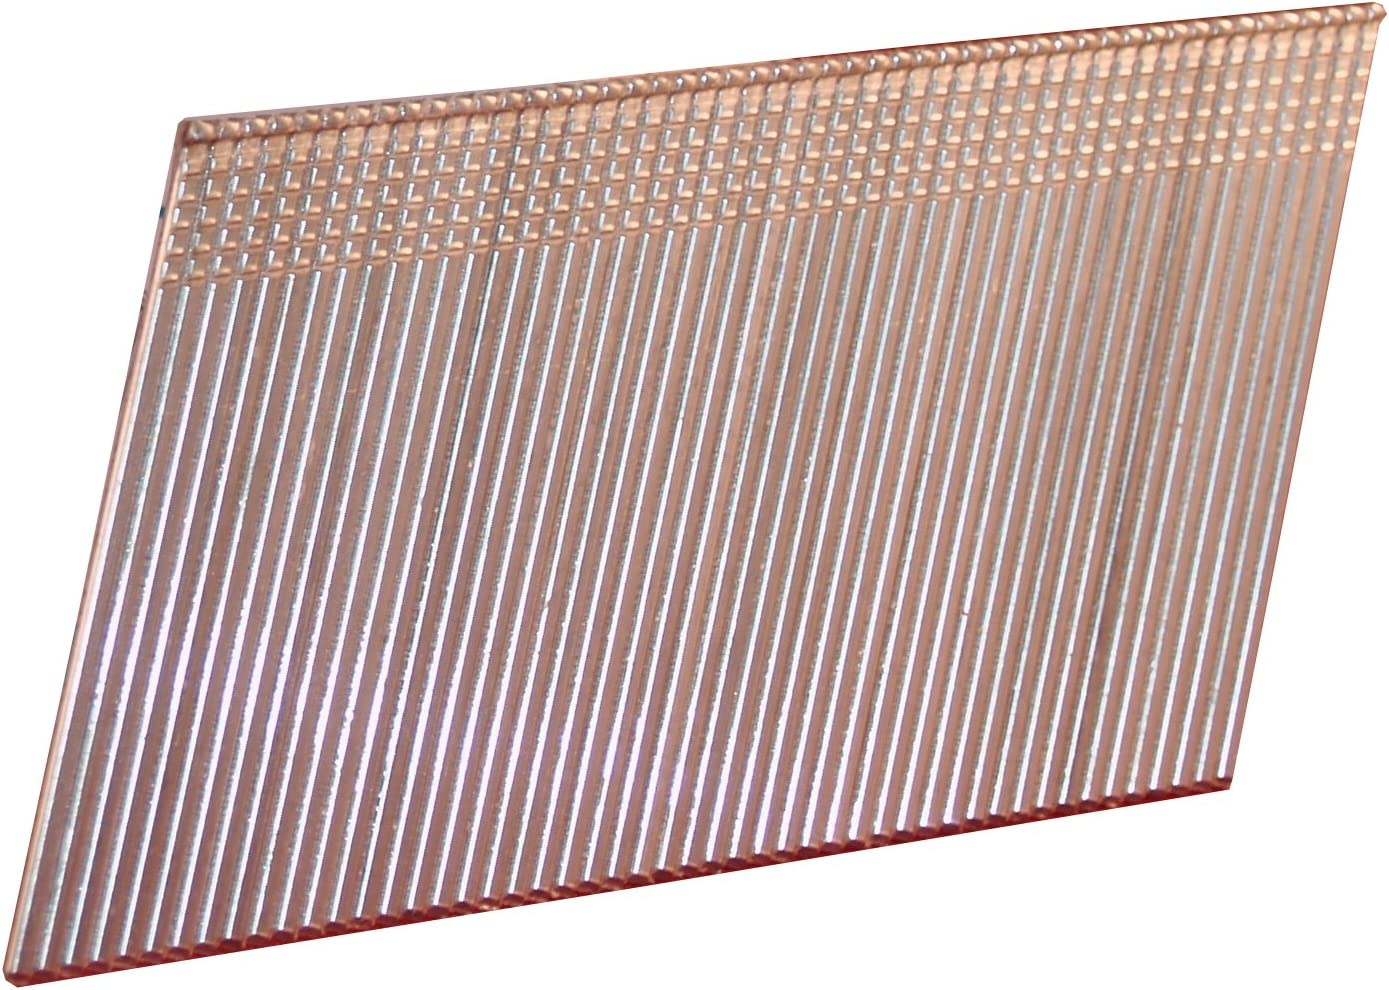 Spot Nails 16216FNG Ranking TOP18 16-Gauge Angle 2000 Galvanized Finish Milwaukee Mall